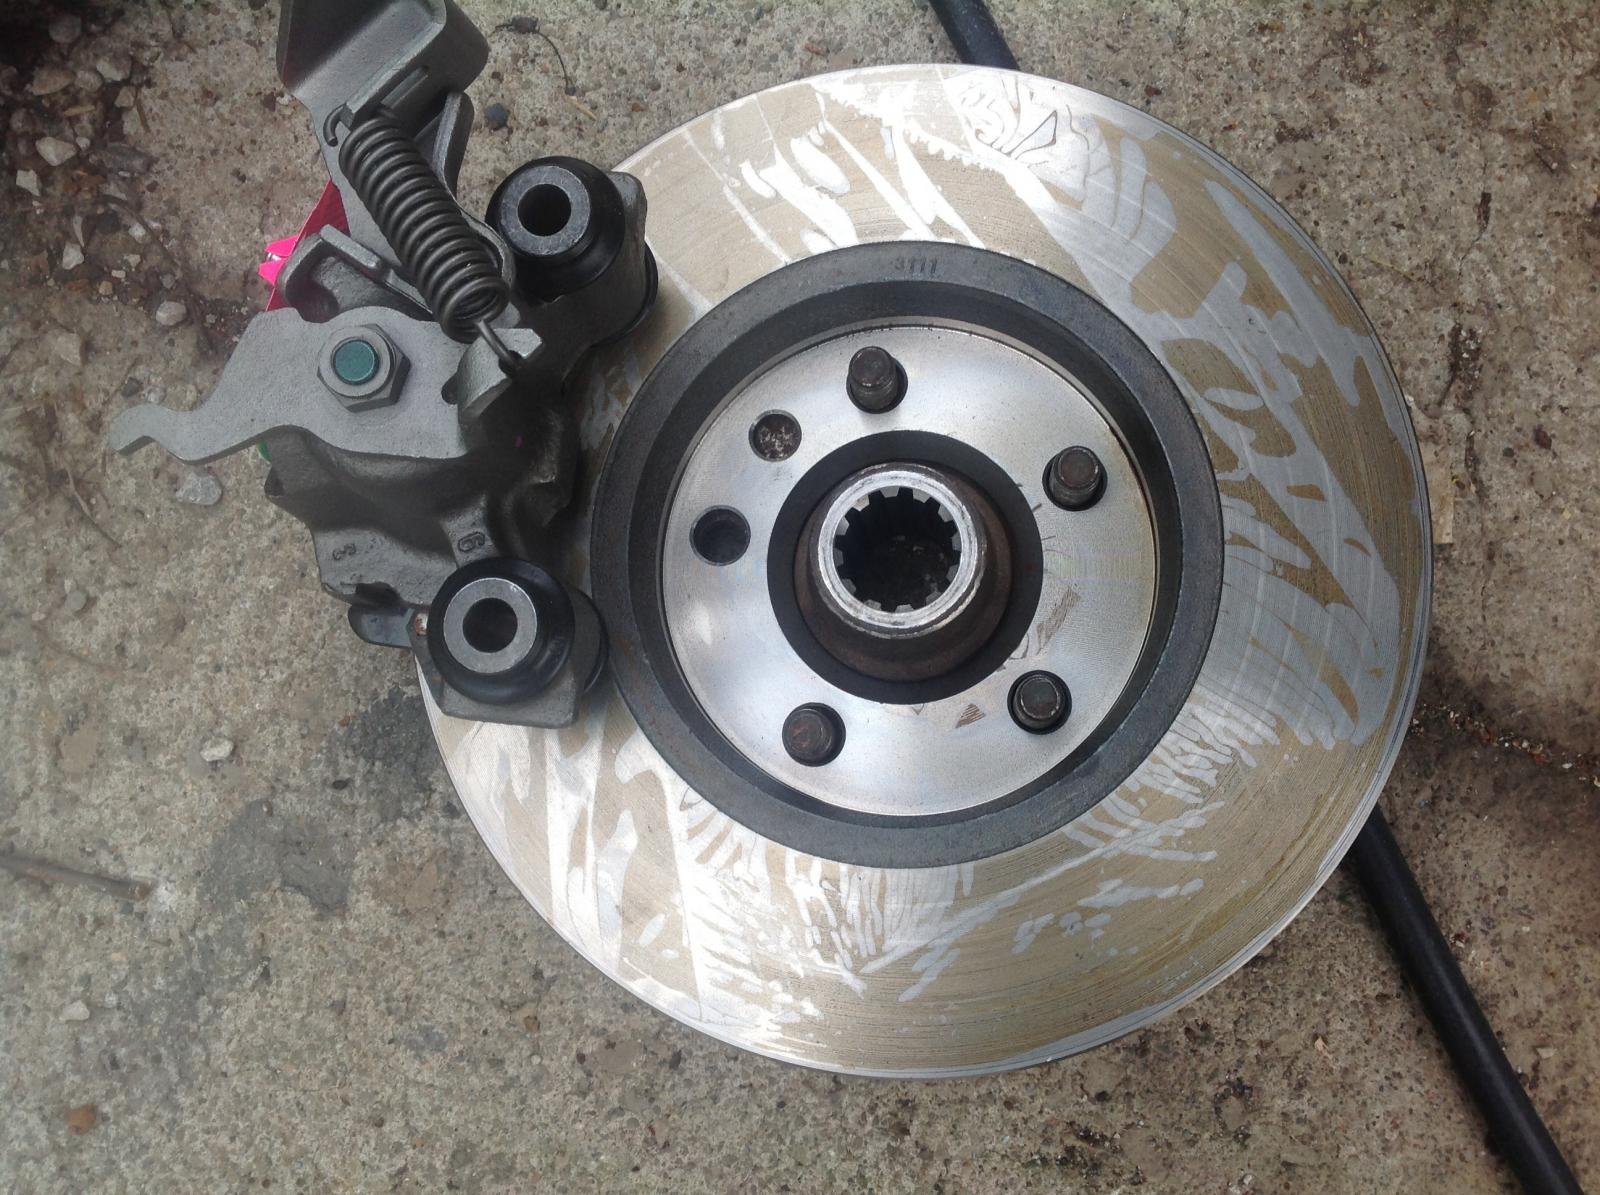 W-body gm calipers and eurovan rear discs